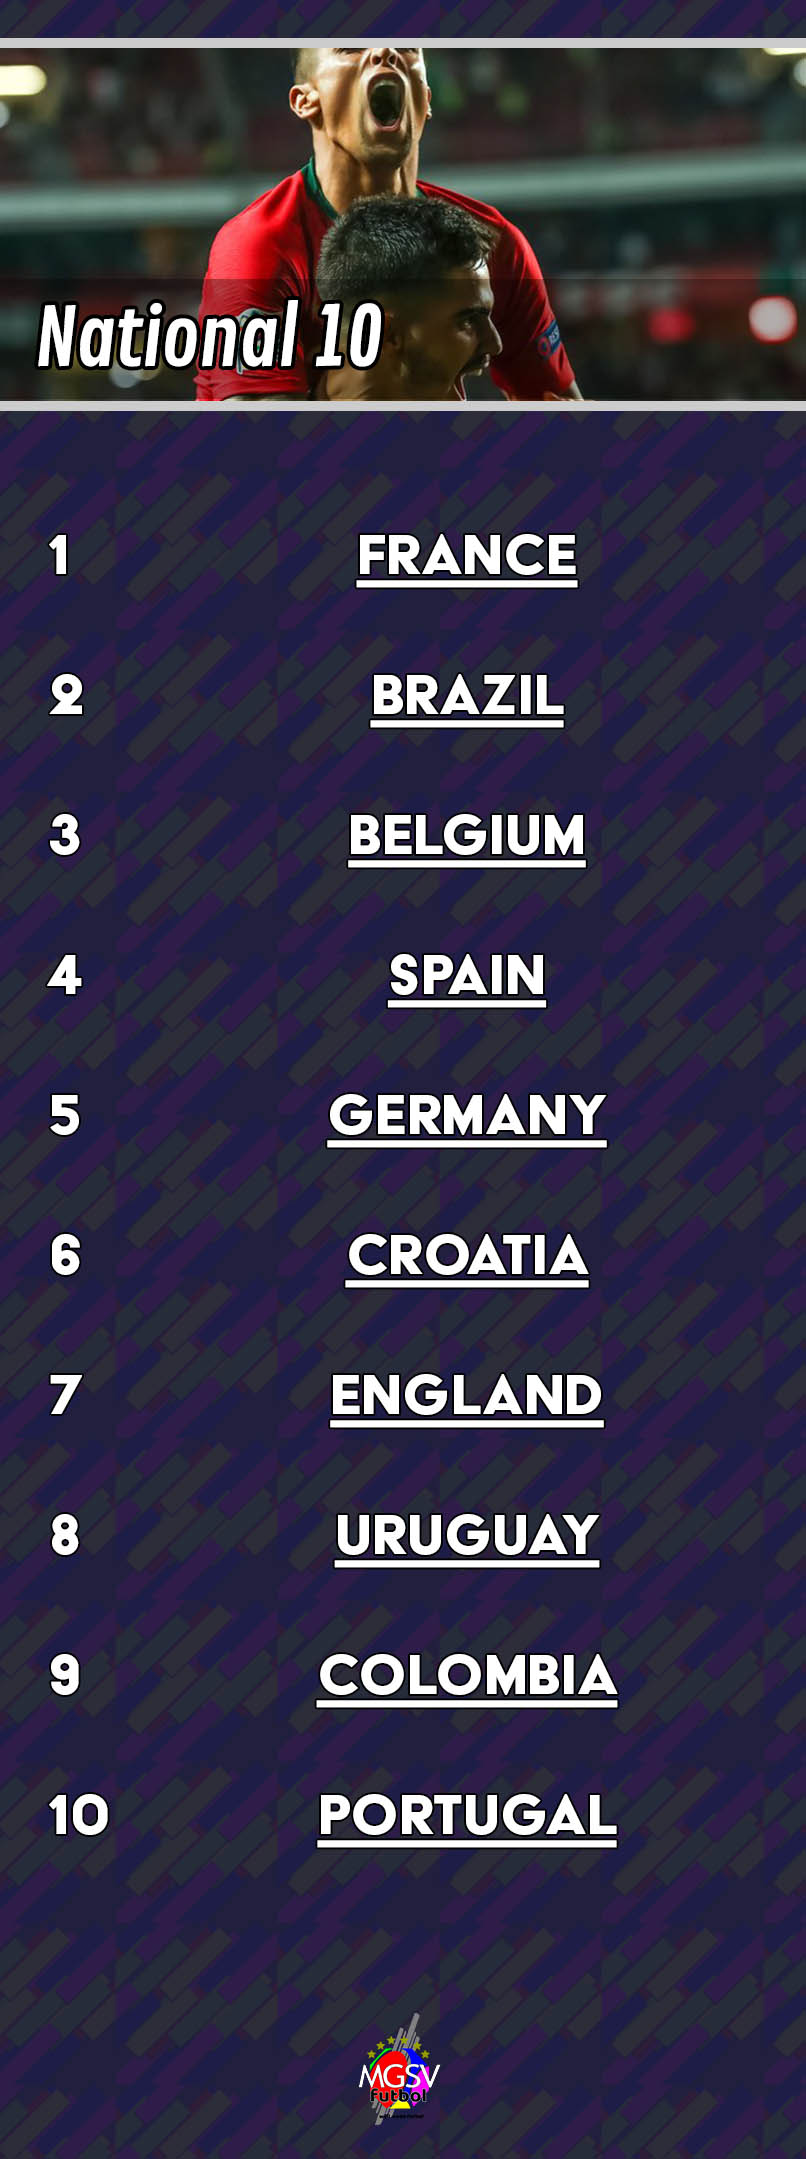 MGSVFutbol Top Ten National Teams